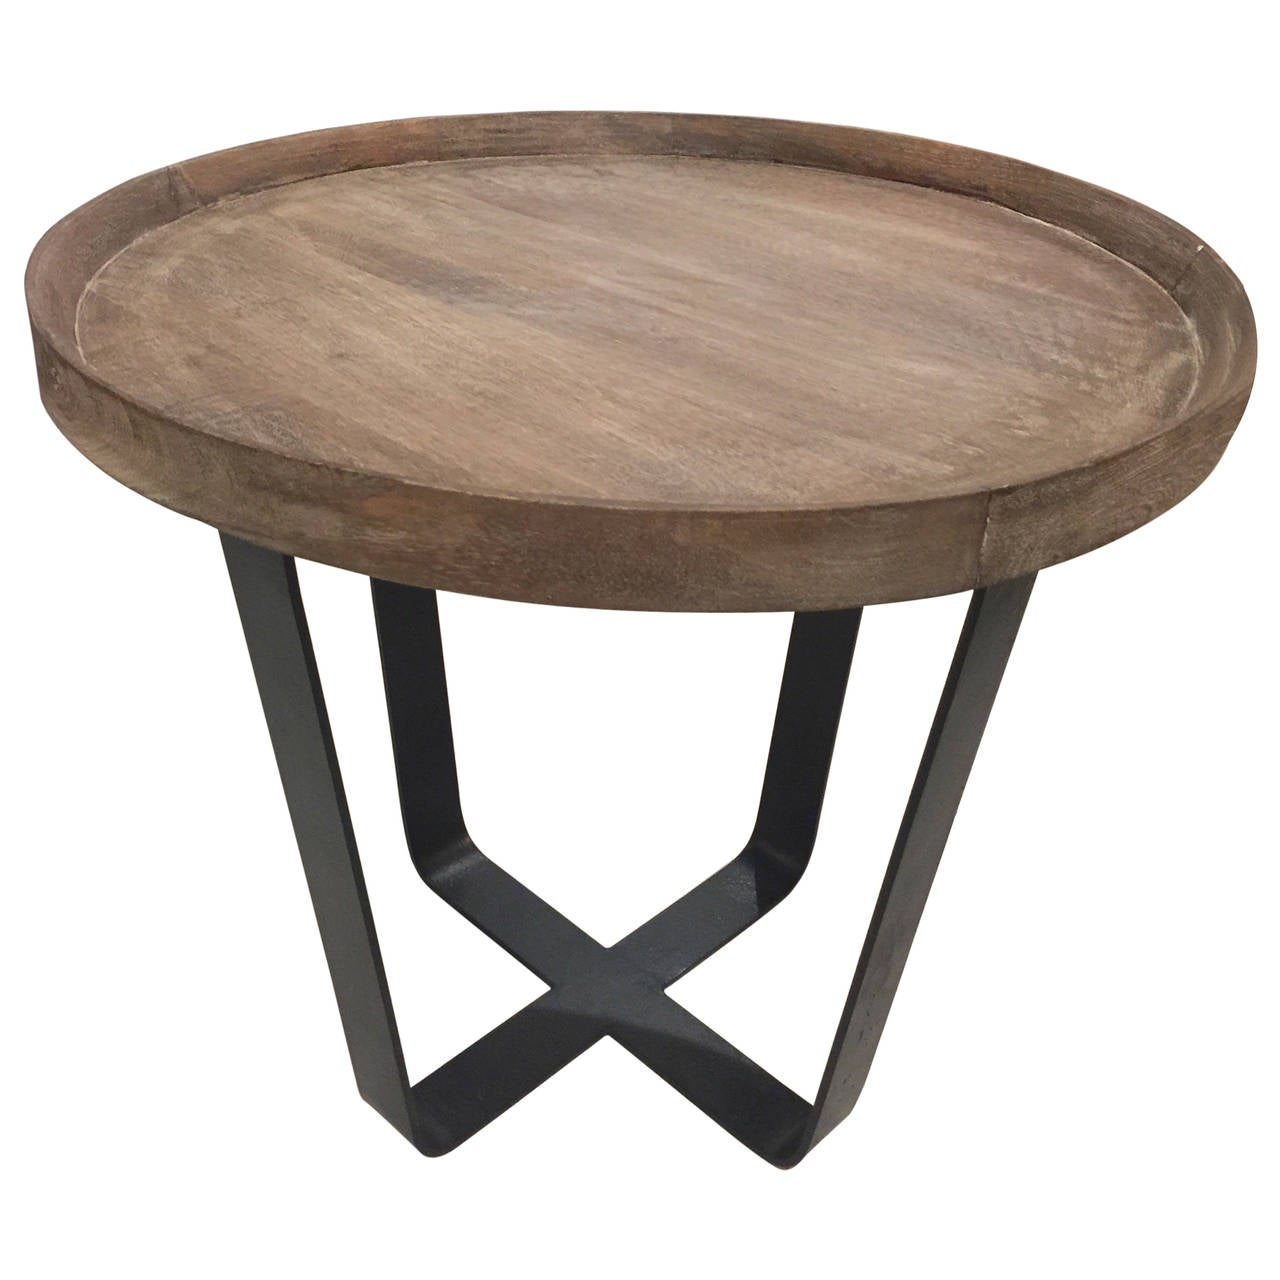 Iron and wood industrial circular side table at 1stdibs for Iron and wood side table